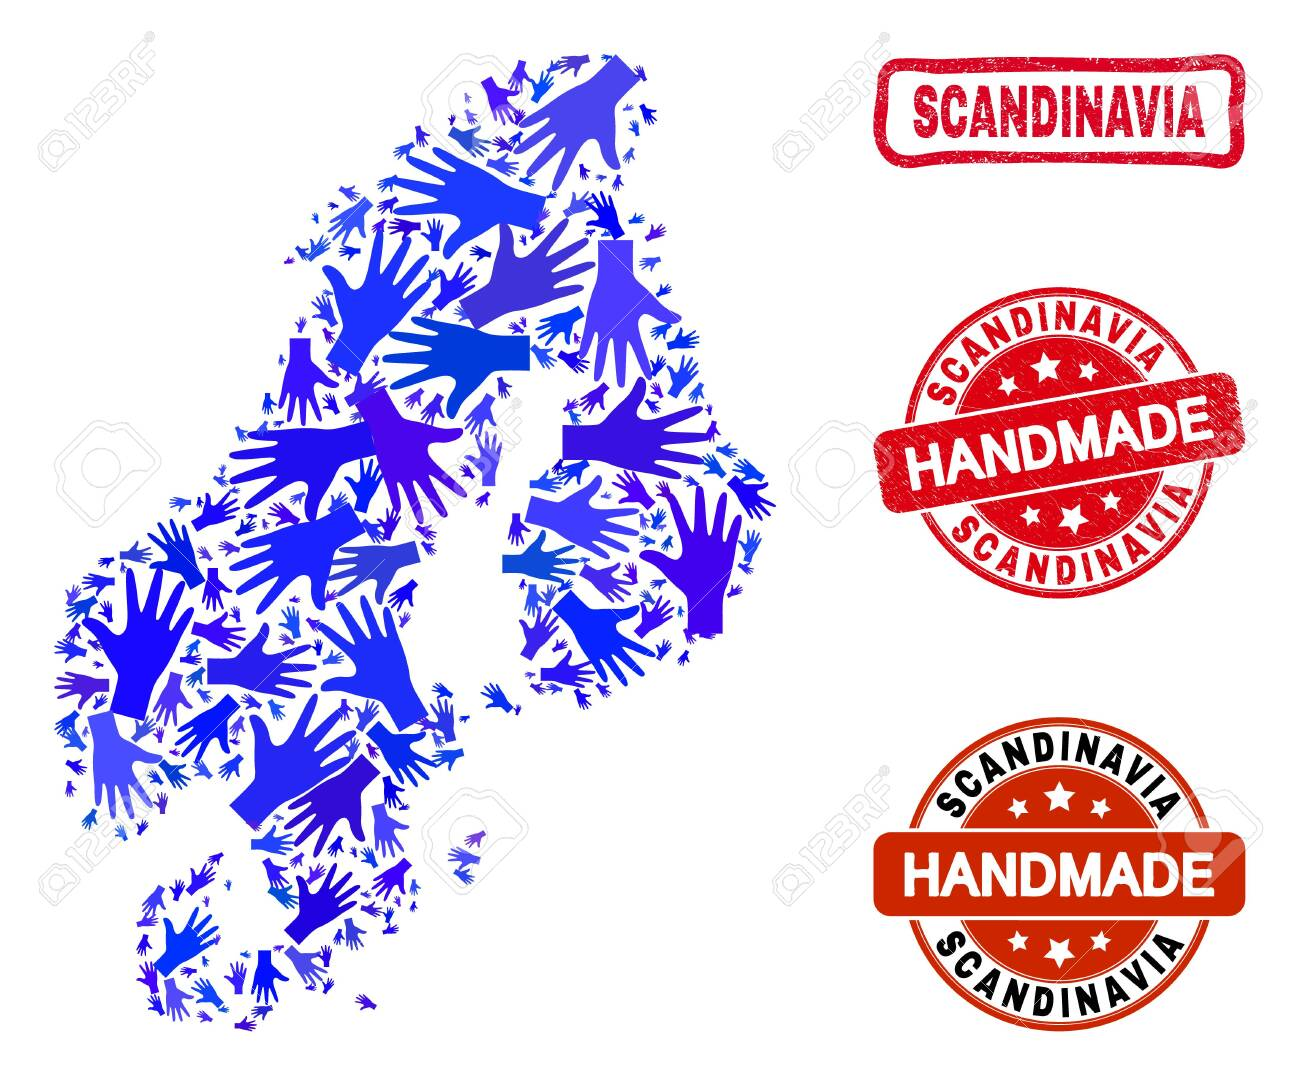 Vector Handmade Composition Of Scandinavia Map And Corroded Seals Mosaic Scandinavia Map Is Made Of Random Blue Hands Rounded And Crooked Red Seals With Unclean Rubber Texture Ilustraciones Vectoriales Clip Art Vectorizado